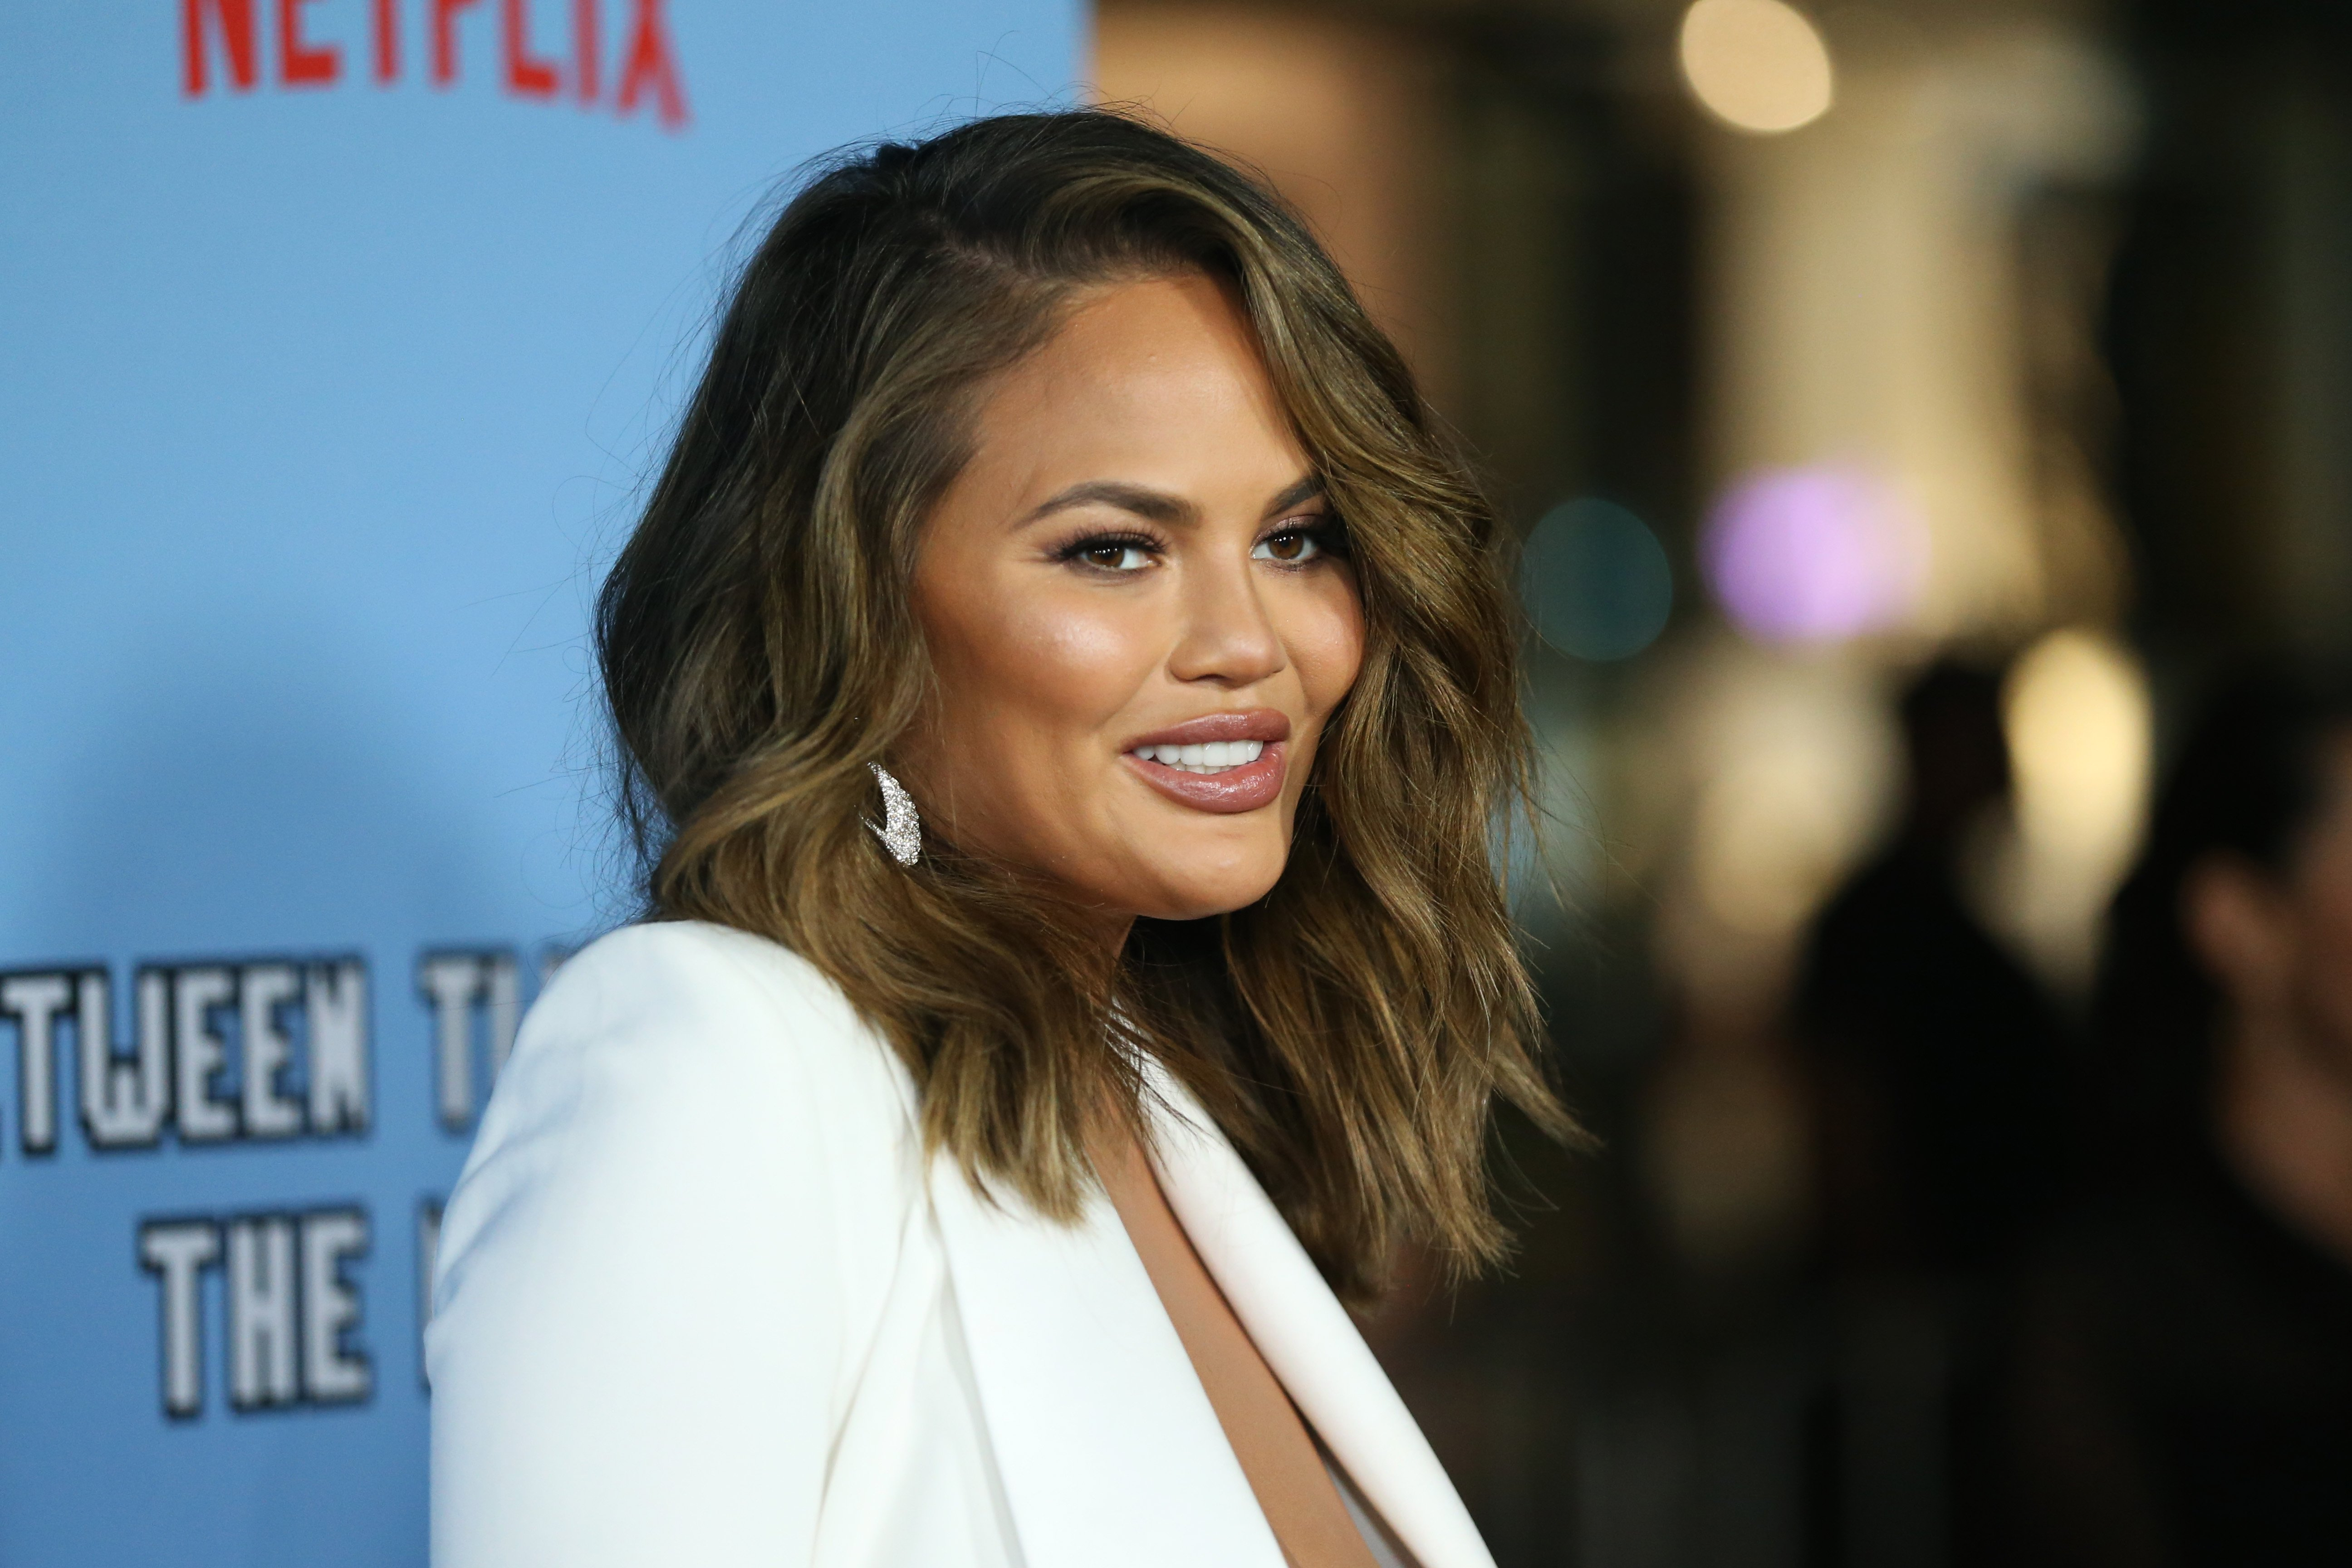 """Chrissy Teigen attends the LA premiere of """"Between Two Ferns: The Movie"""" on September 16, 2019, in Hollywood, California. 